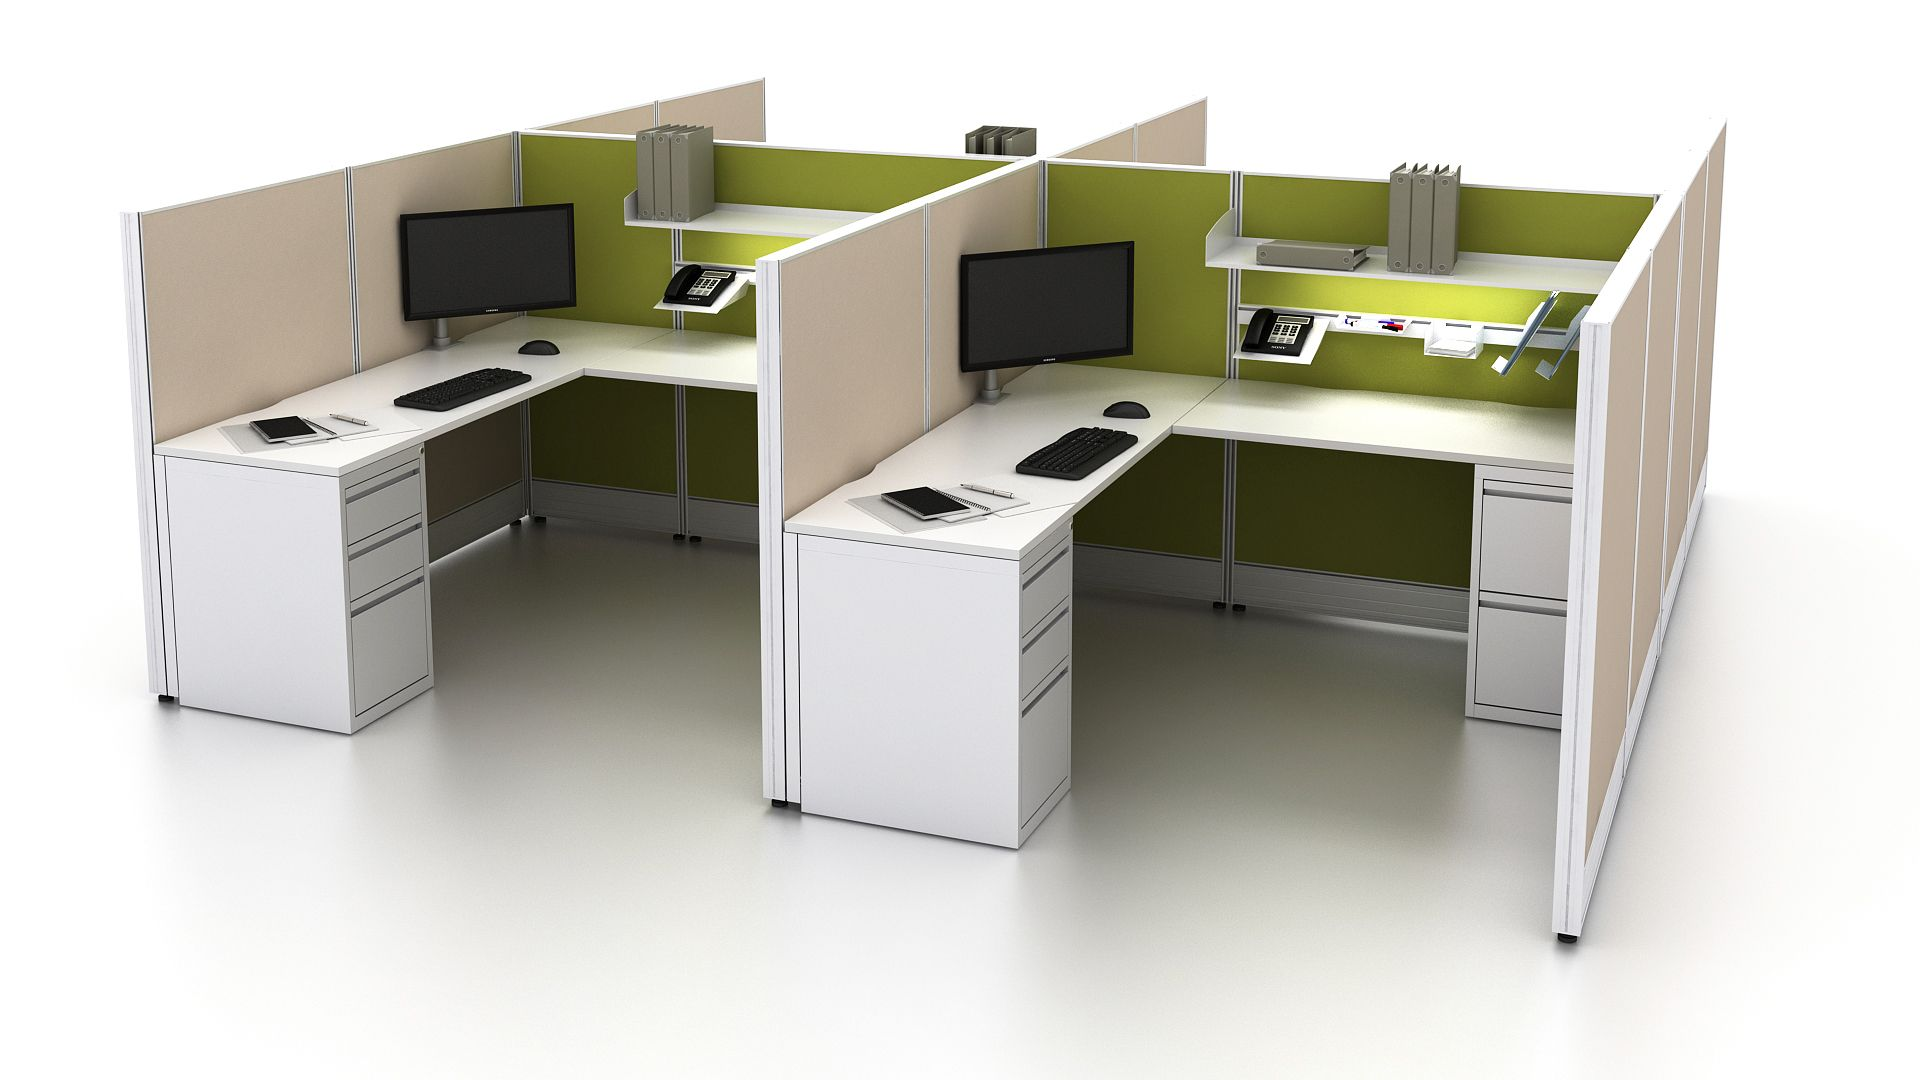 Office Furniture Interiors Is A Full Service Office Furniture Company In  Central Texas, Offering Office Cubicle Furniture And Systems.